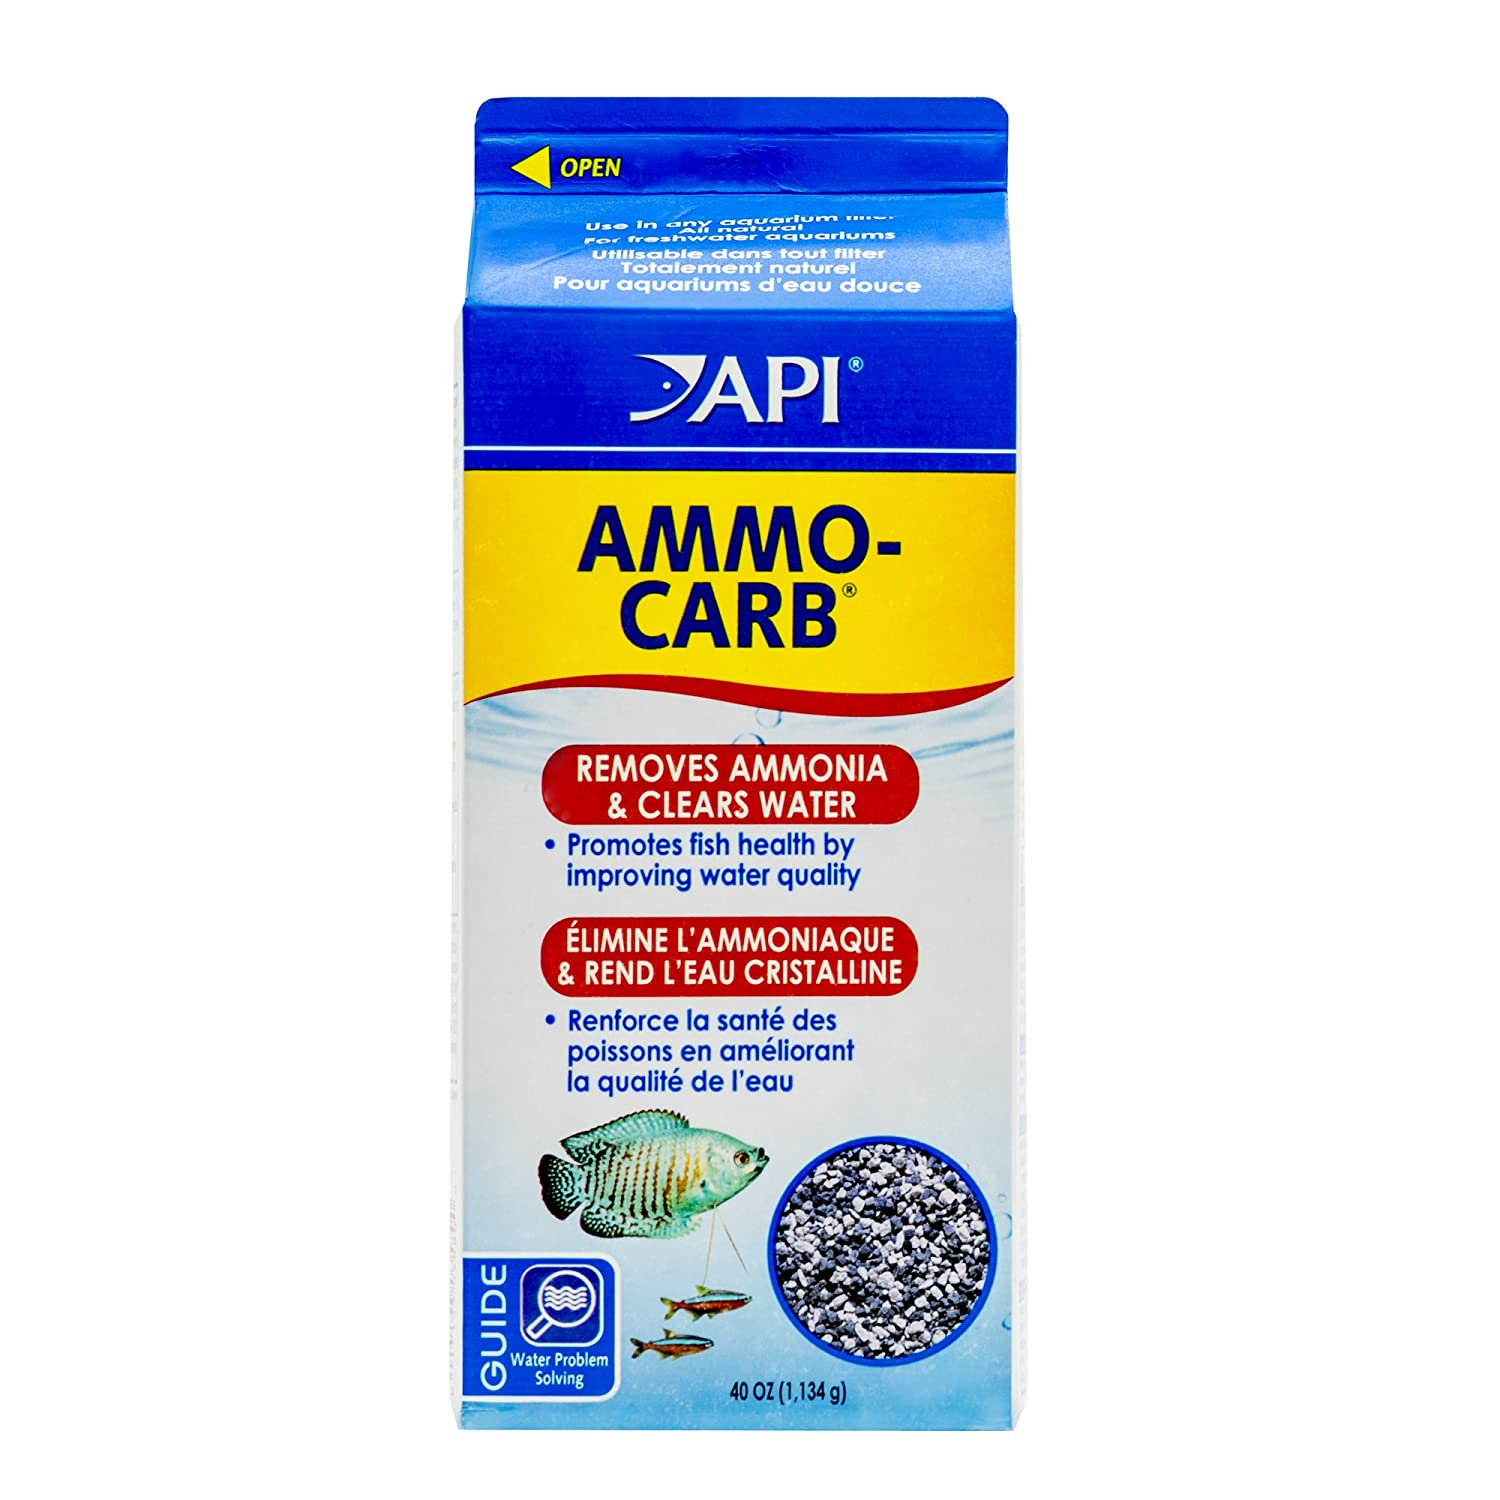 Amazon.com : API AMMO-CARB Aquarium Filtration Media .75-Cubic Feet Box : Aquarium Filter Accessories : Pet Supplies